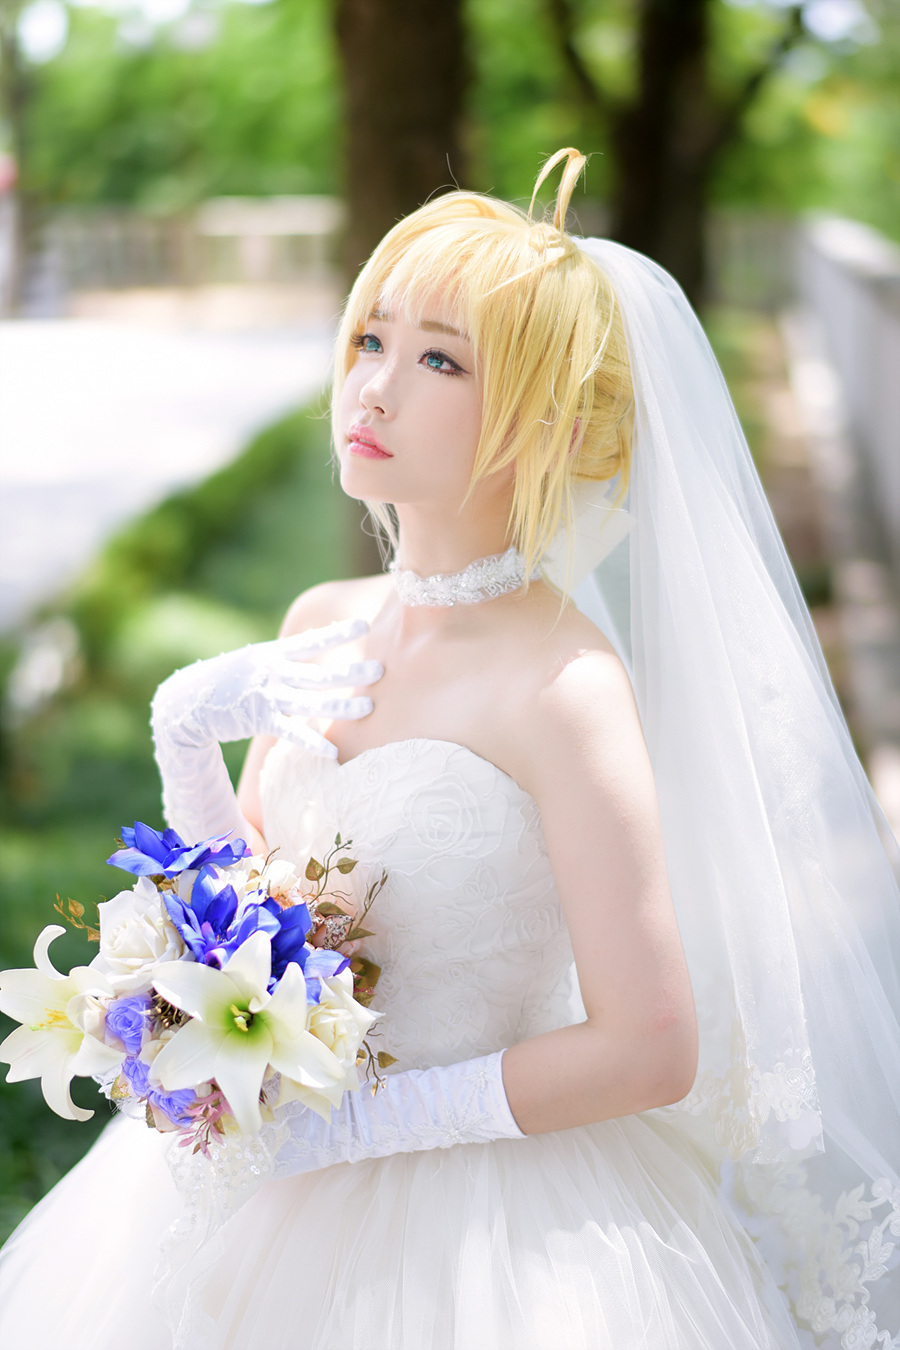 Saber Wedding Dress Cosplay 4 Cosplay Know Your Meme